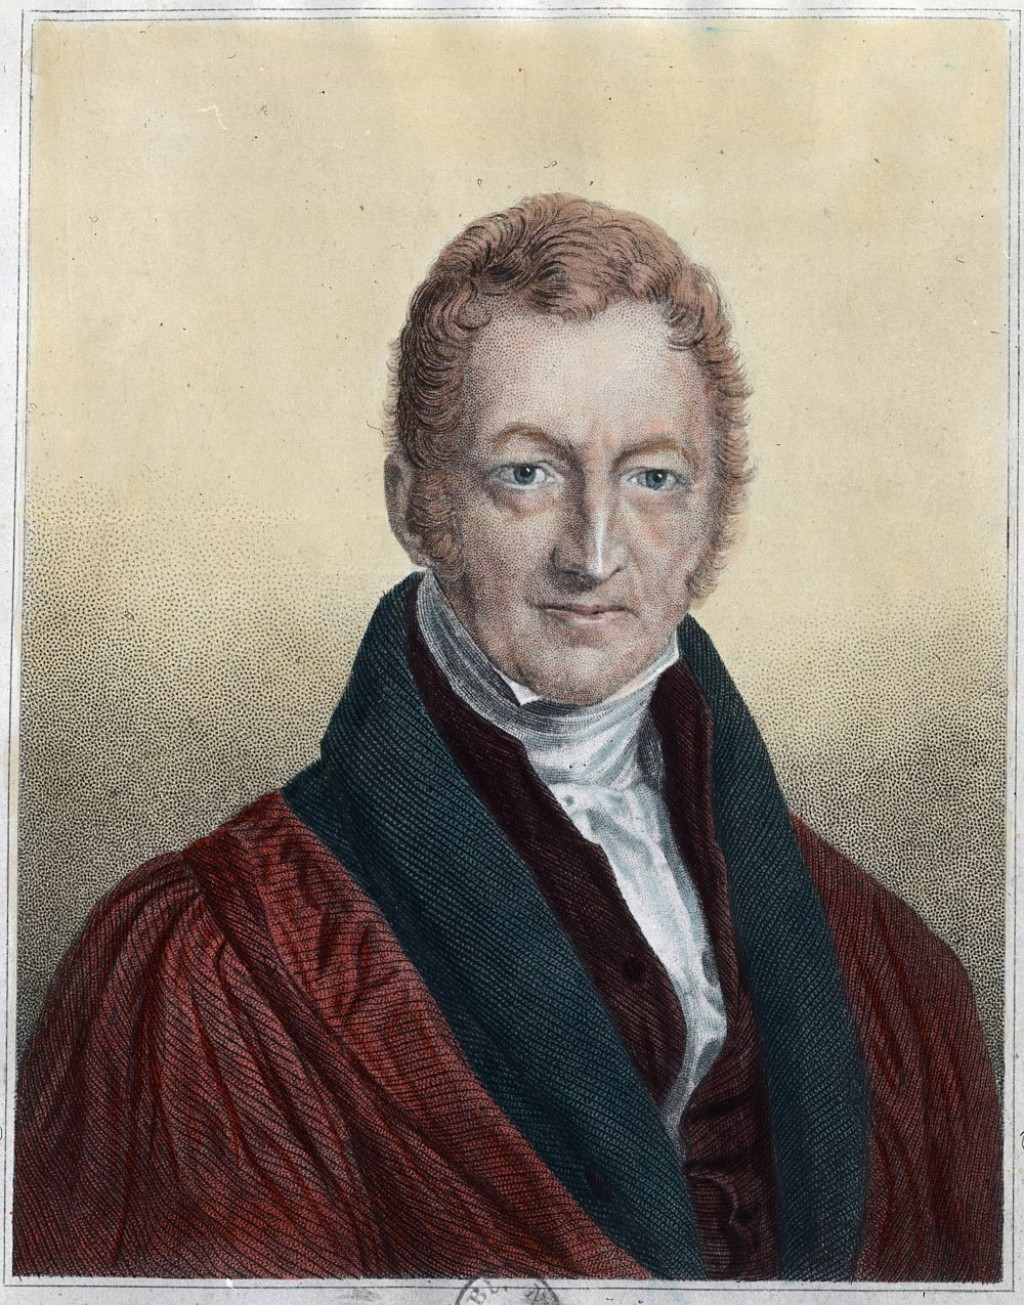 022 W1000 1798 1 Principe Population Thomas Malthus An Essay On The Principle Of Marvelous Summary Analysis Argued In His (1798) That Large